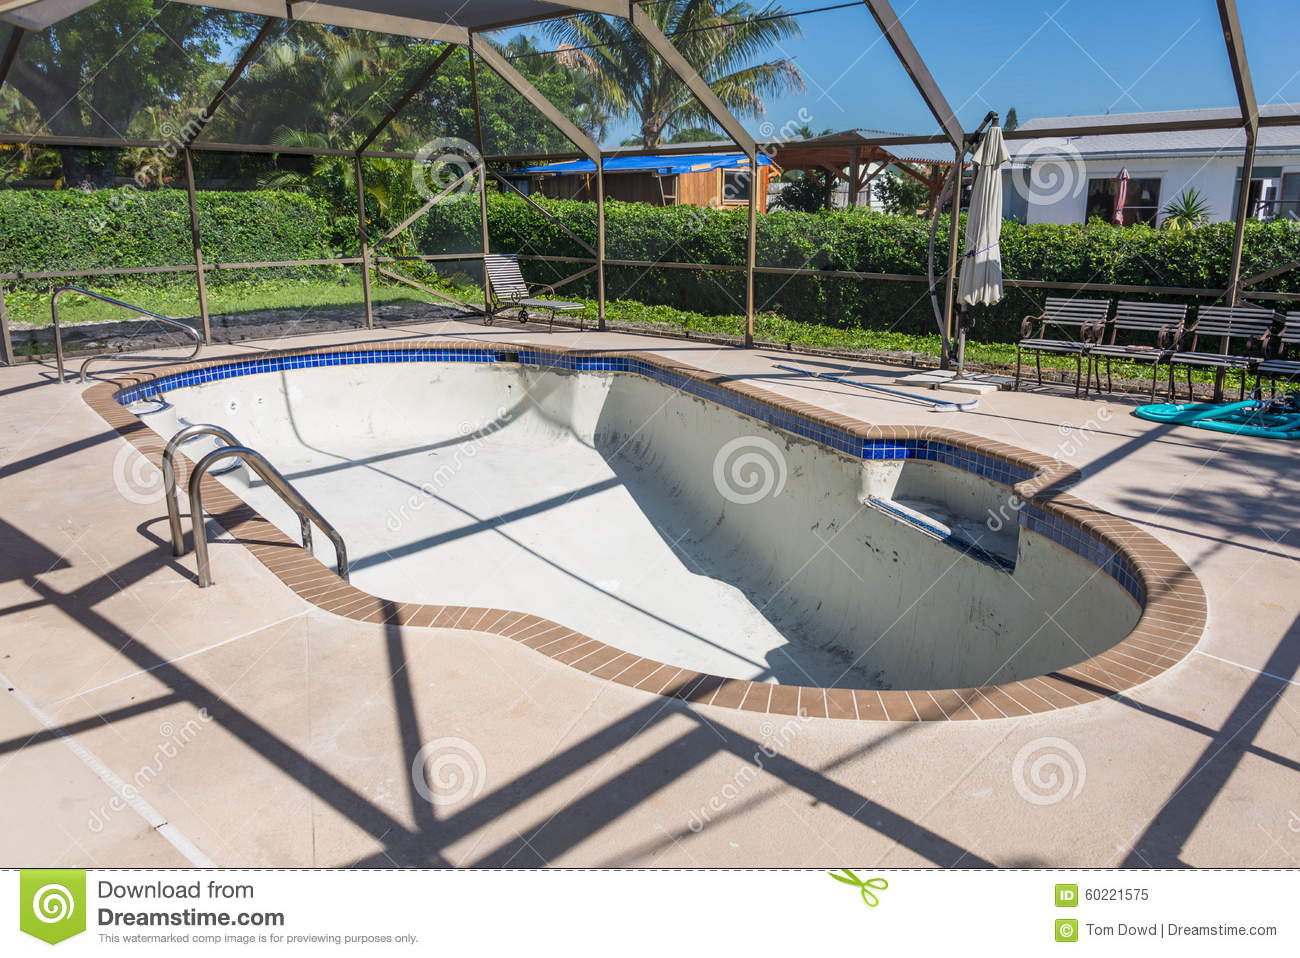 New Pool Tile Border Grout Work Remodel Stock Photo